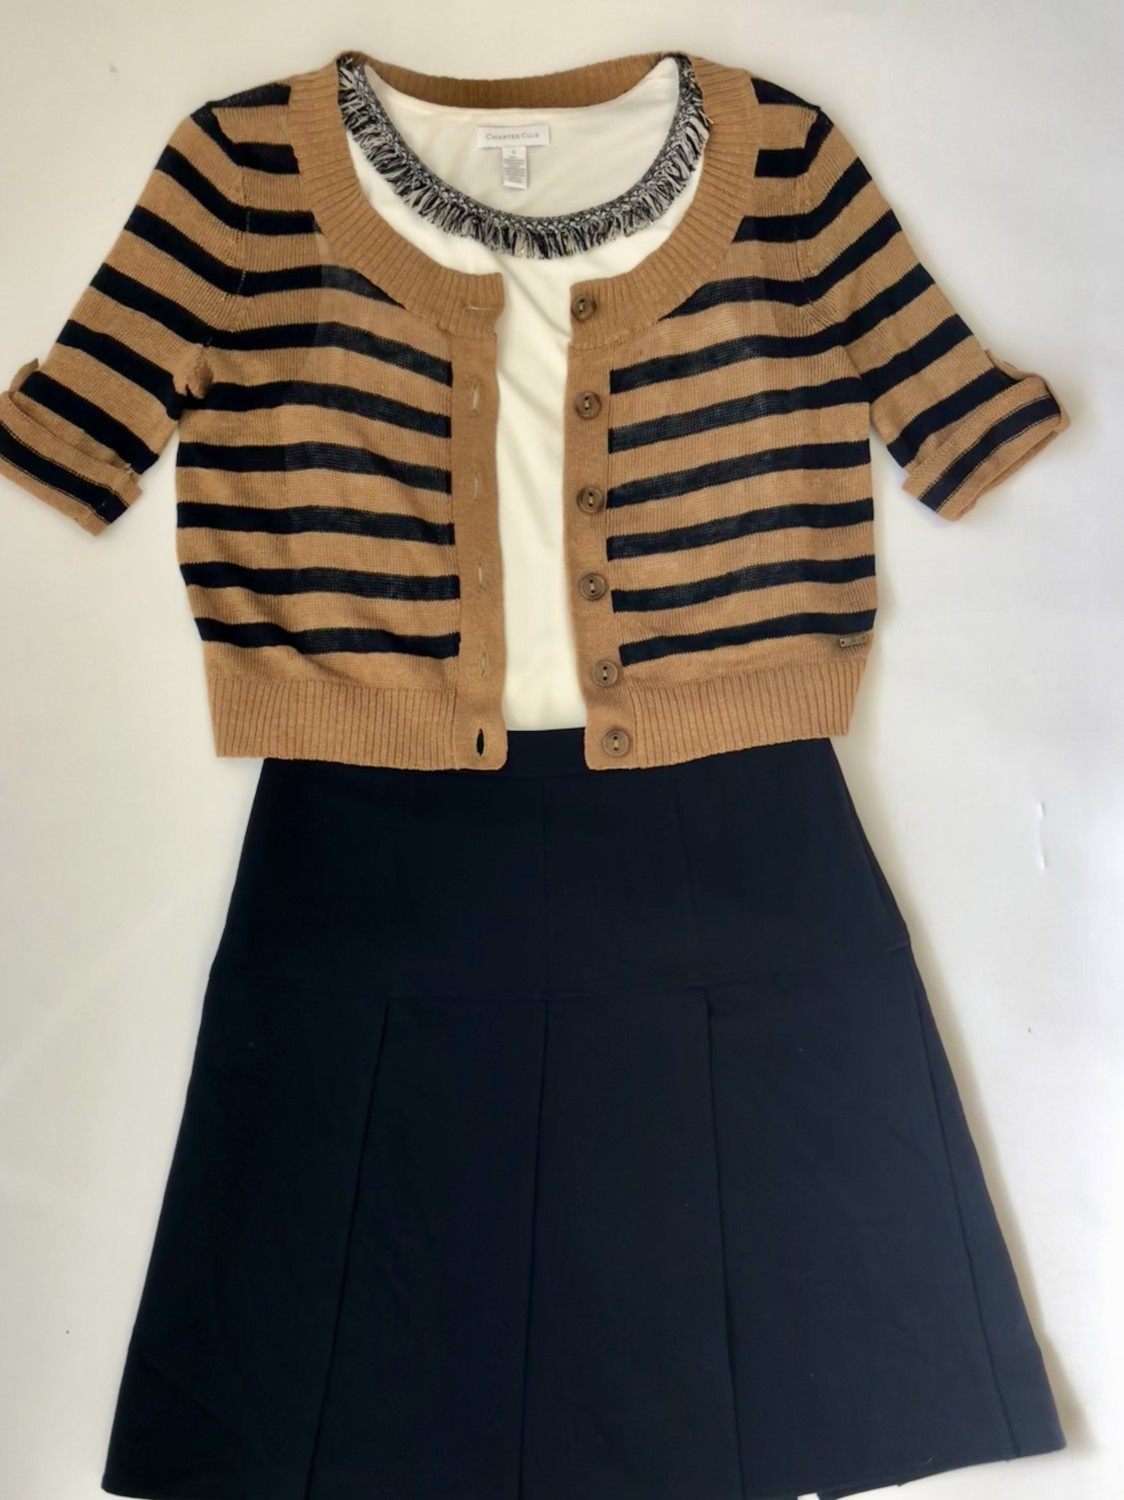 Tommy Hilfiger Skirt – Original Retail: $78, CWS: $20, Liquidation: $10